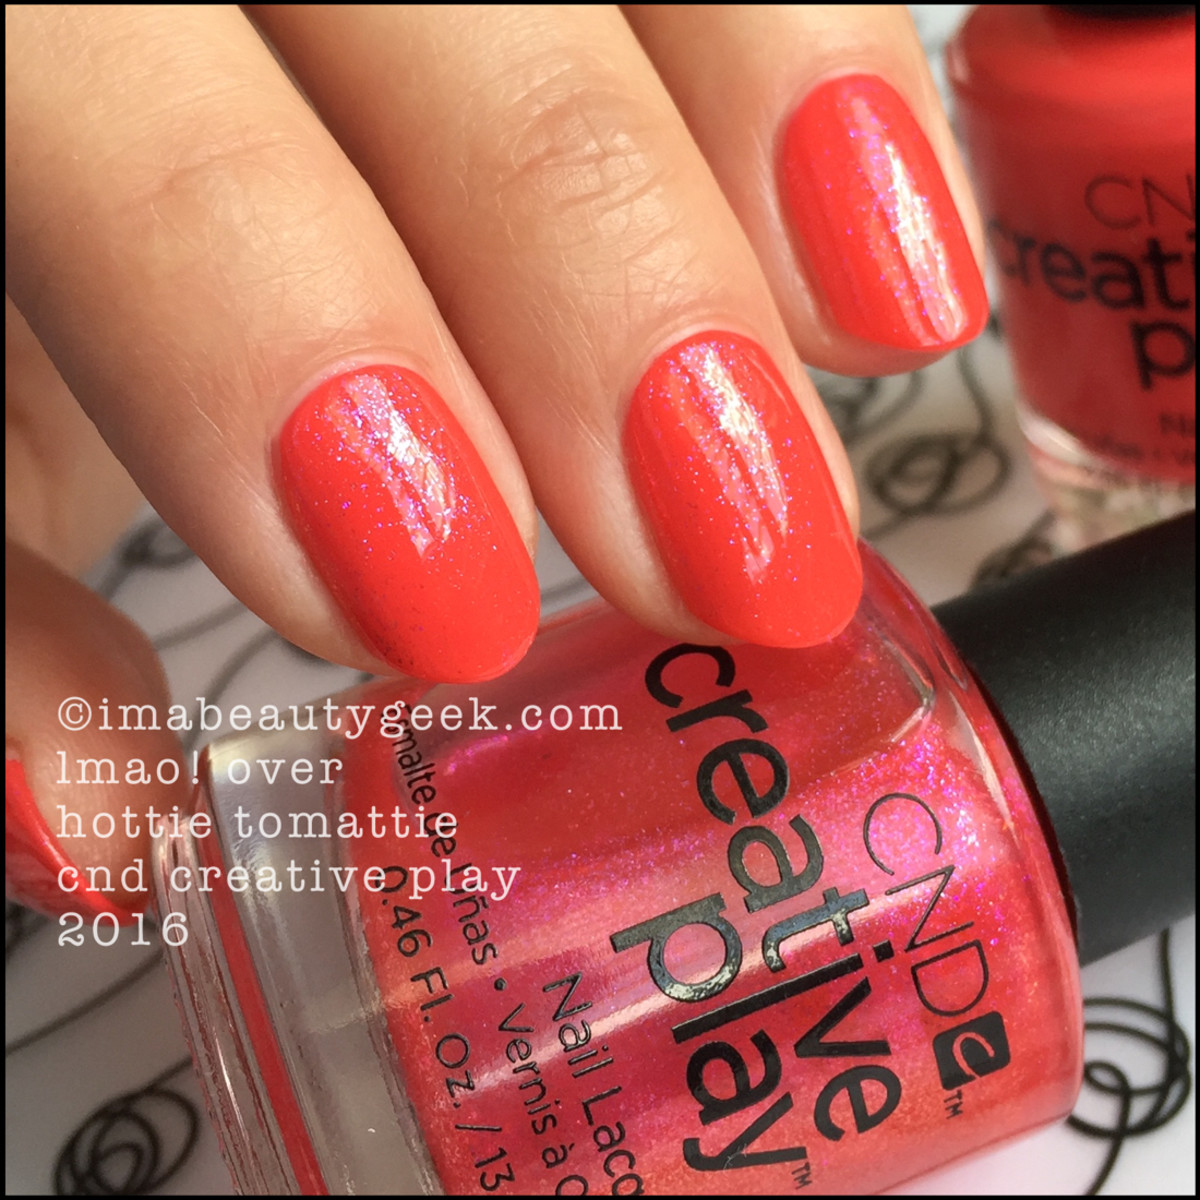 CND Creative Play LMAO over Hottie Tomattie_CND Creative Play Nail Polish Swatches